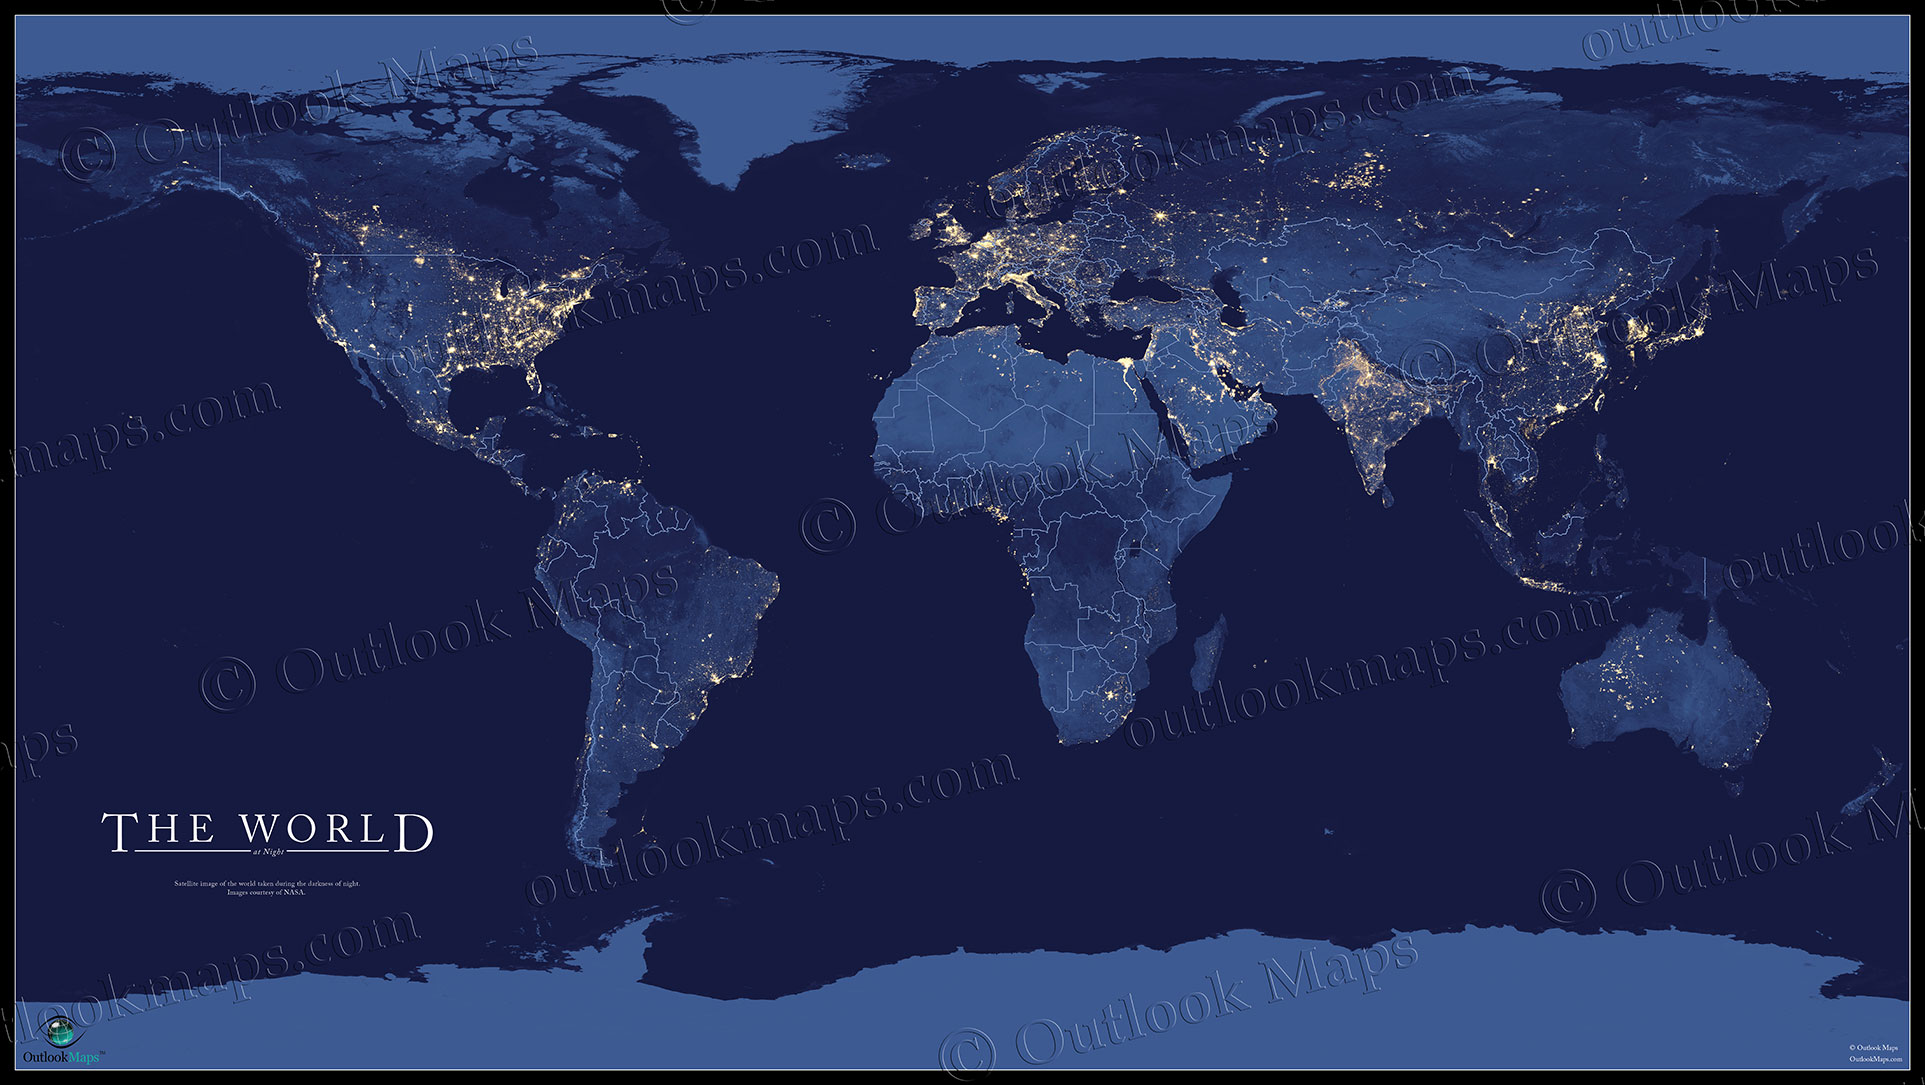 World map at night nasa satellite view of city lights world wall map at darkness showing city lights at night gumiabroncs Images